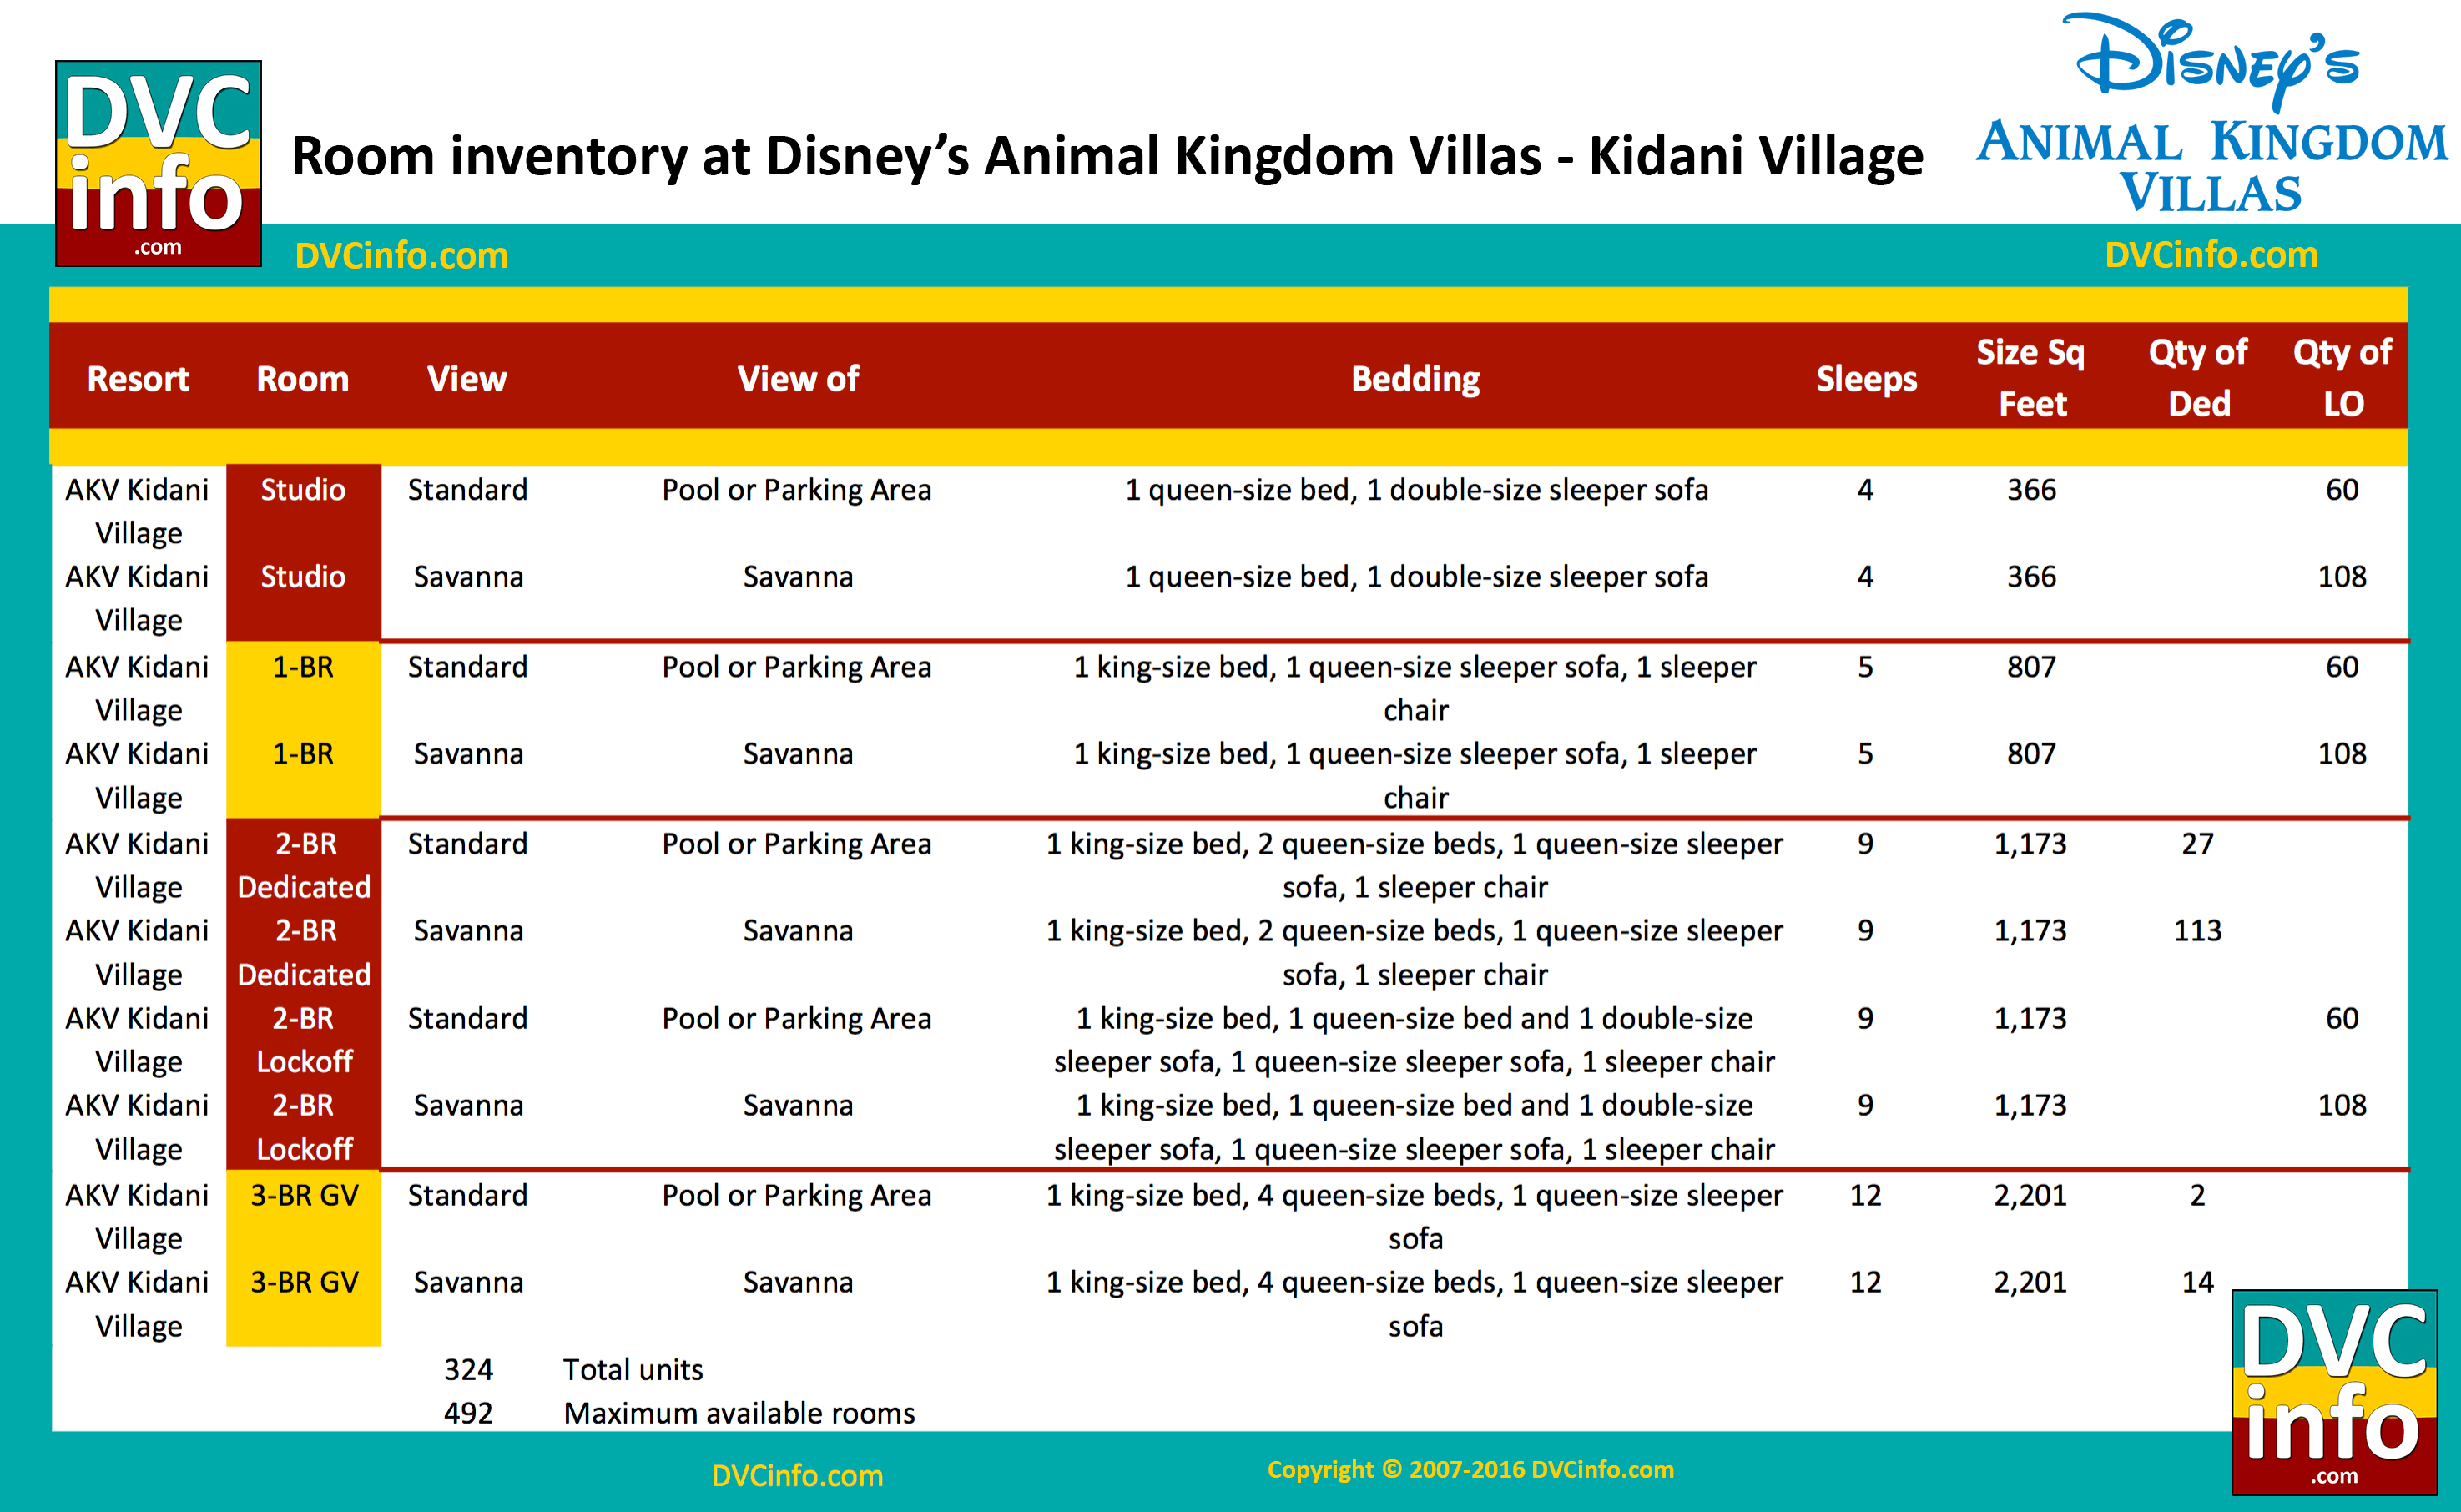 Disney's Animal Kingdom Villas - DVCinfo on dolphin map, garden spot village map, new orleans square map, expedition everest map, contemporary map, main street usa map, disney magic map, sanaa map, pirates of the caribbean map, kearney village map, wilderness lodge map, disney dream map, pop century map, hong village map, art of animation map, shades of green map, disney vacation club map, world showcase map, port orleans french quarter map, all star movies map,